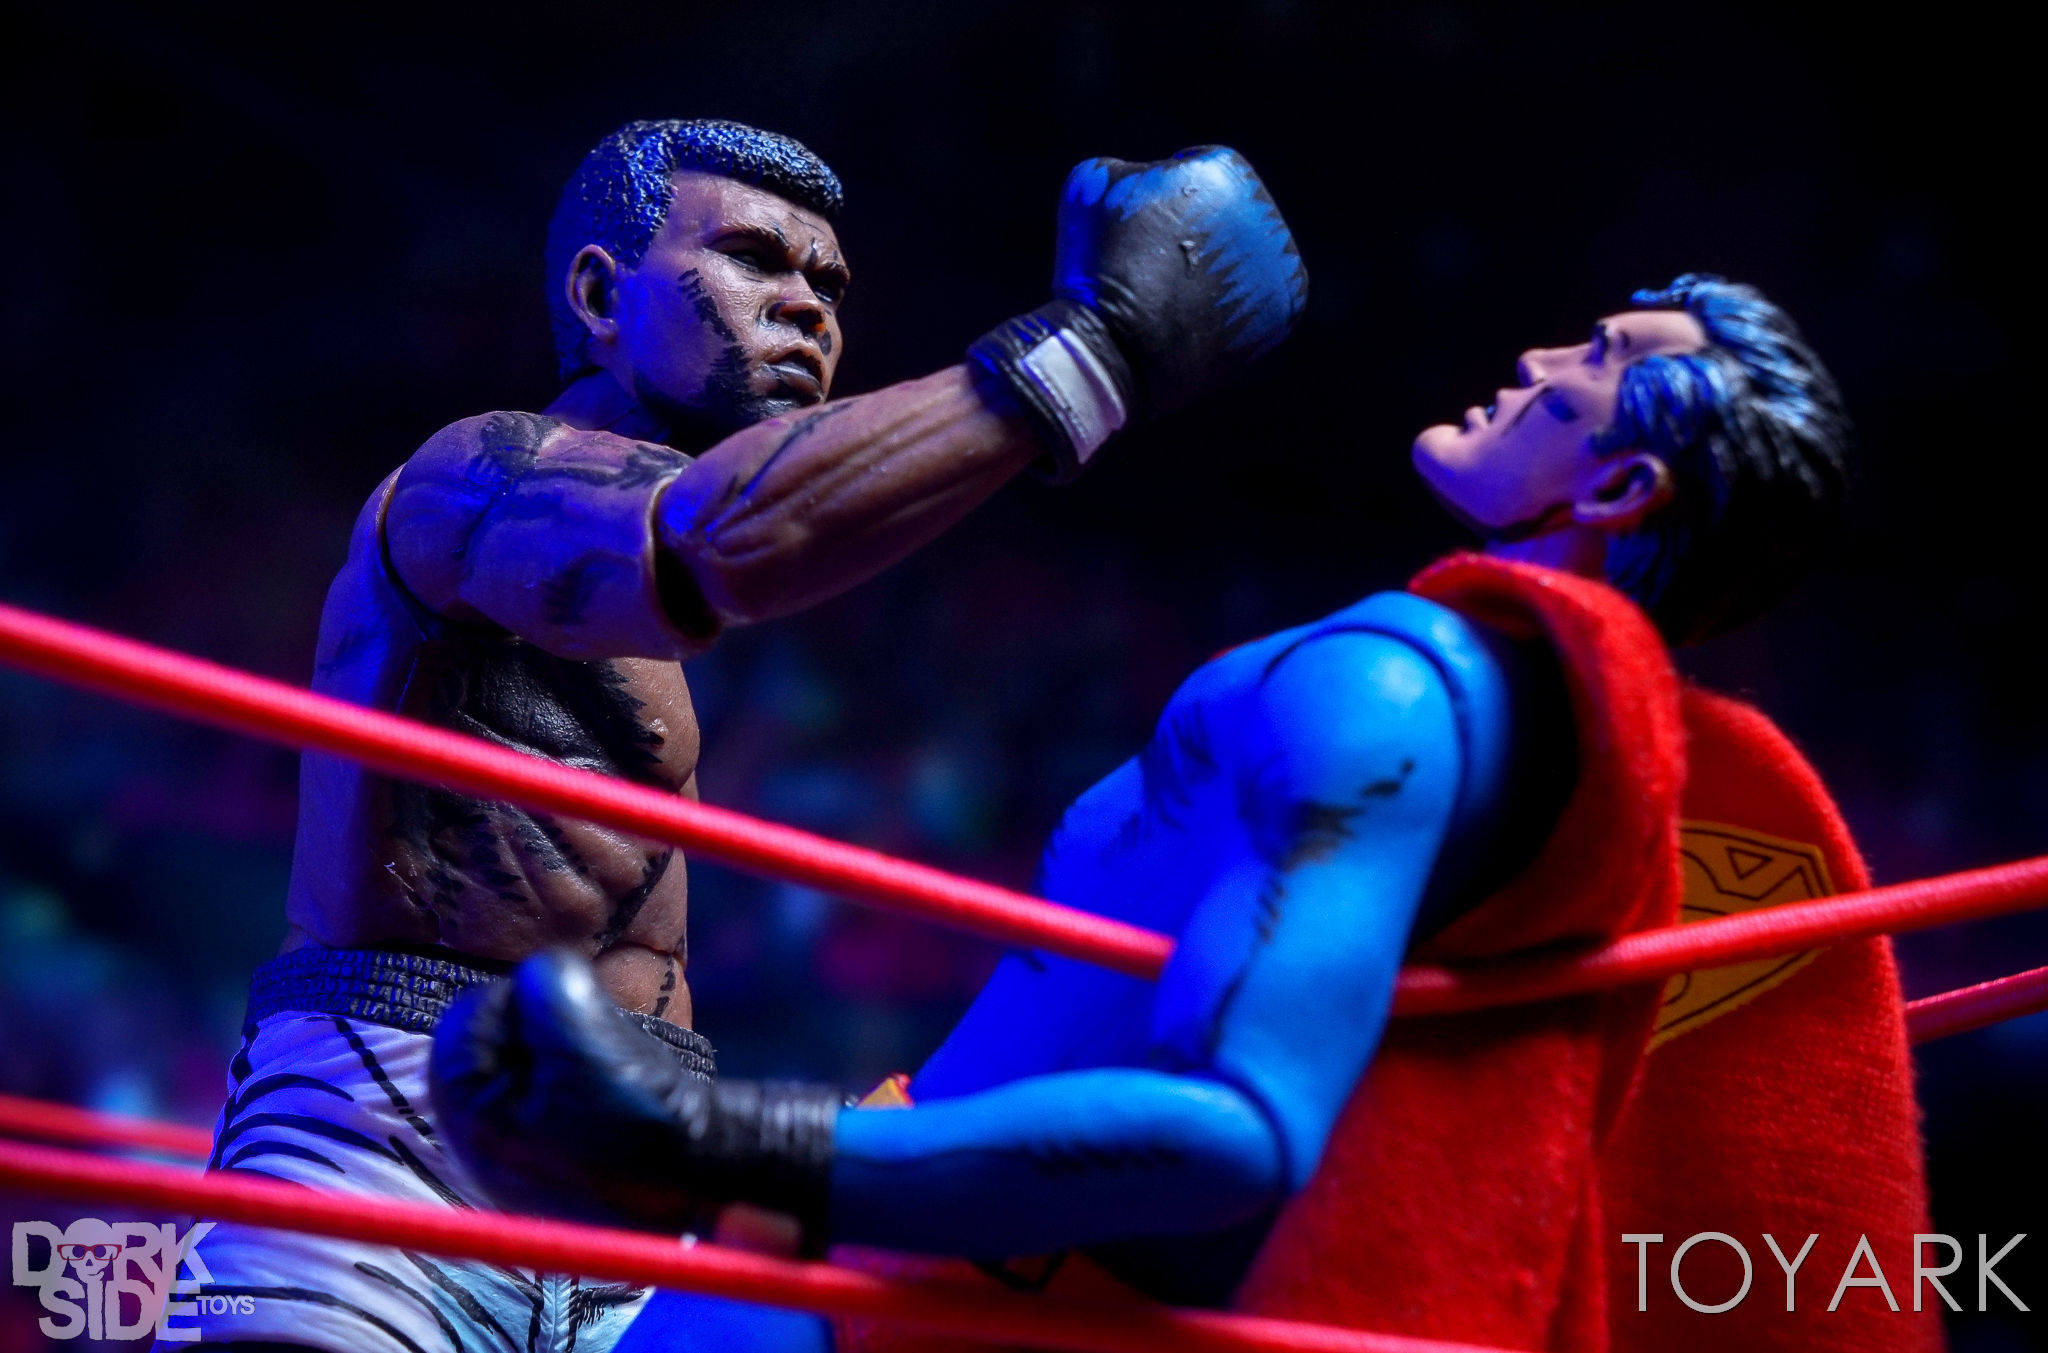 http://news.toyark.com/wp-content/uploads/sites/4/2017/02/NECA-Ali-vs-Superman-Set-027.jpg